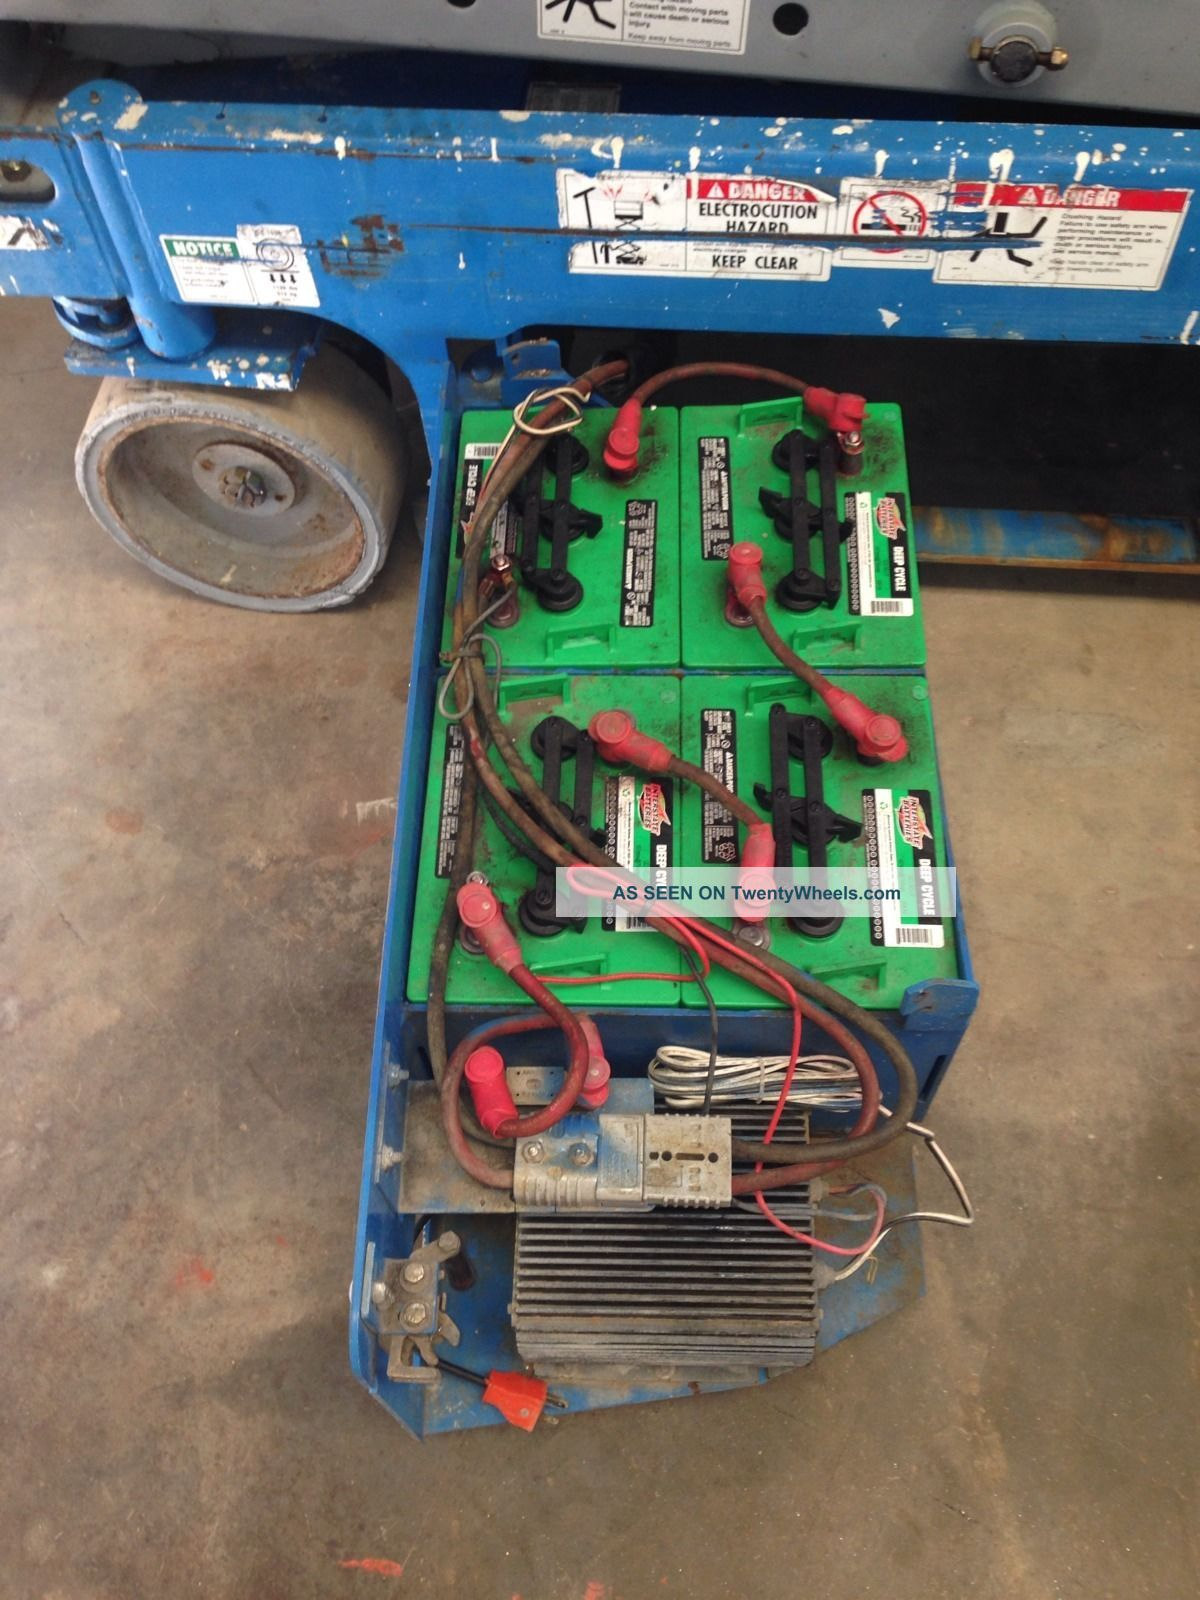 Jlg Foot Pedal Wiring Diagram Libraries For Scissor Lift 1532 Battery Libraryjlg 4 Pin Trailer